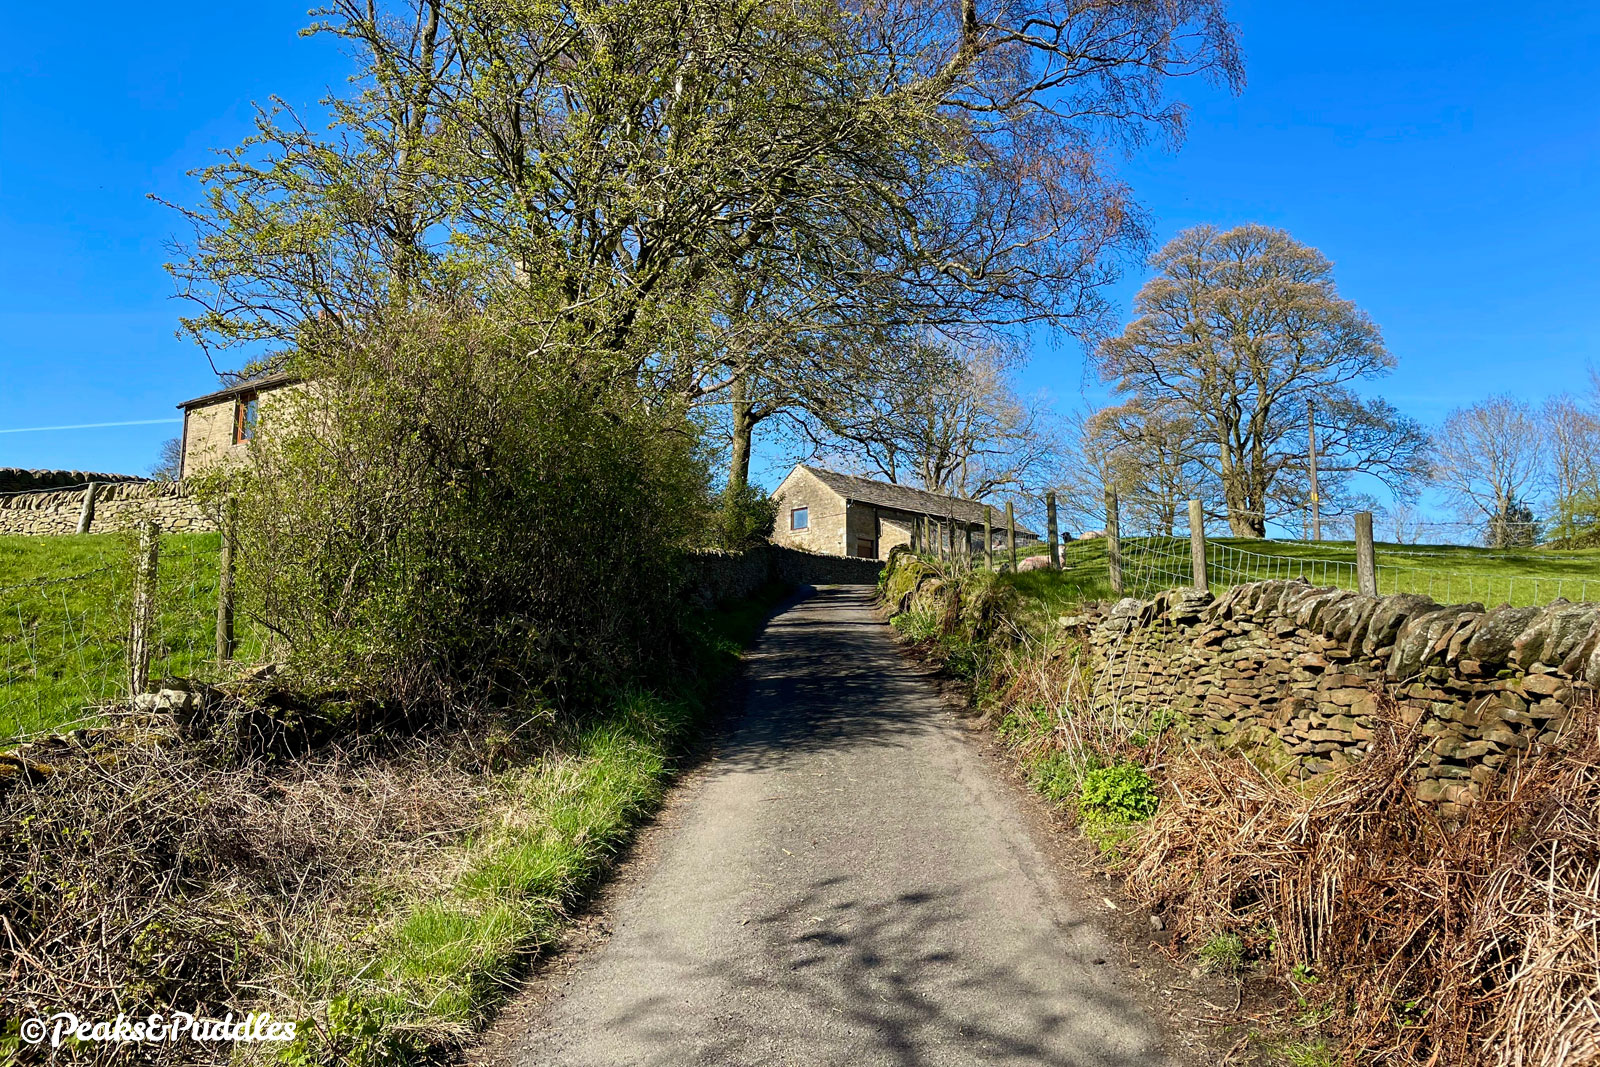 A sharp climb leads up to Roych Farm, which enjoys rural, isolated views of The Roych.